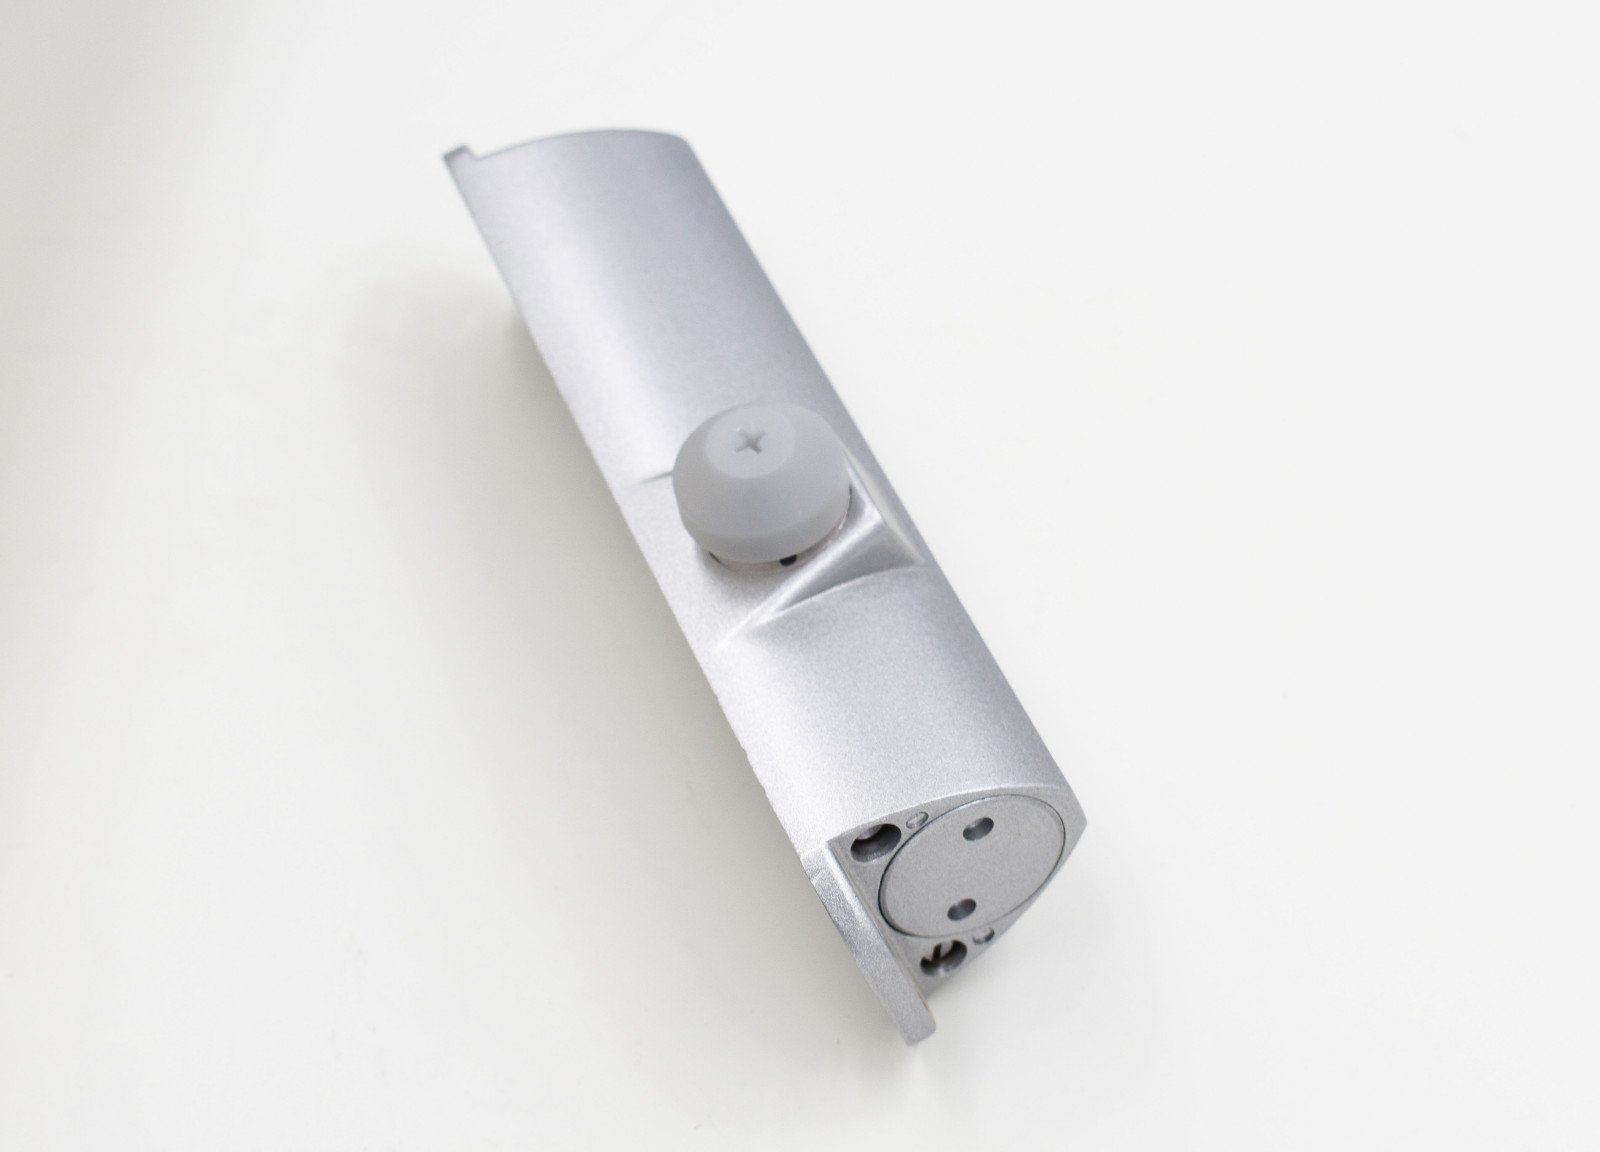 hidden automatic door closer Kerui Furniture Hardware automatic door closer price